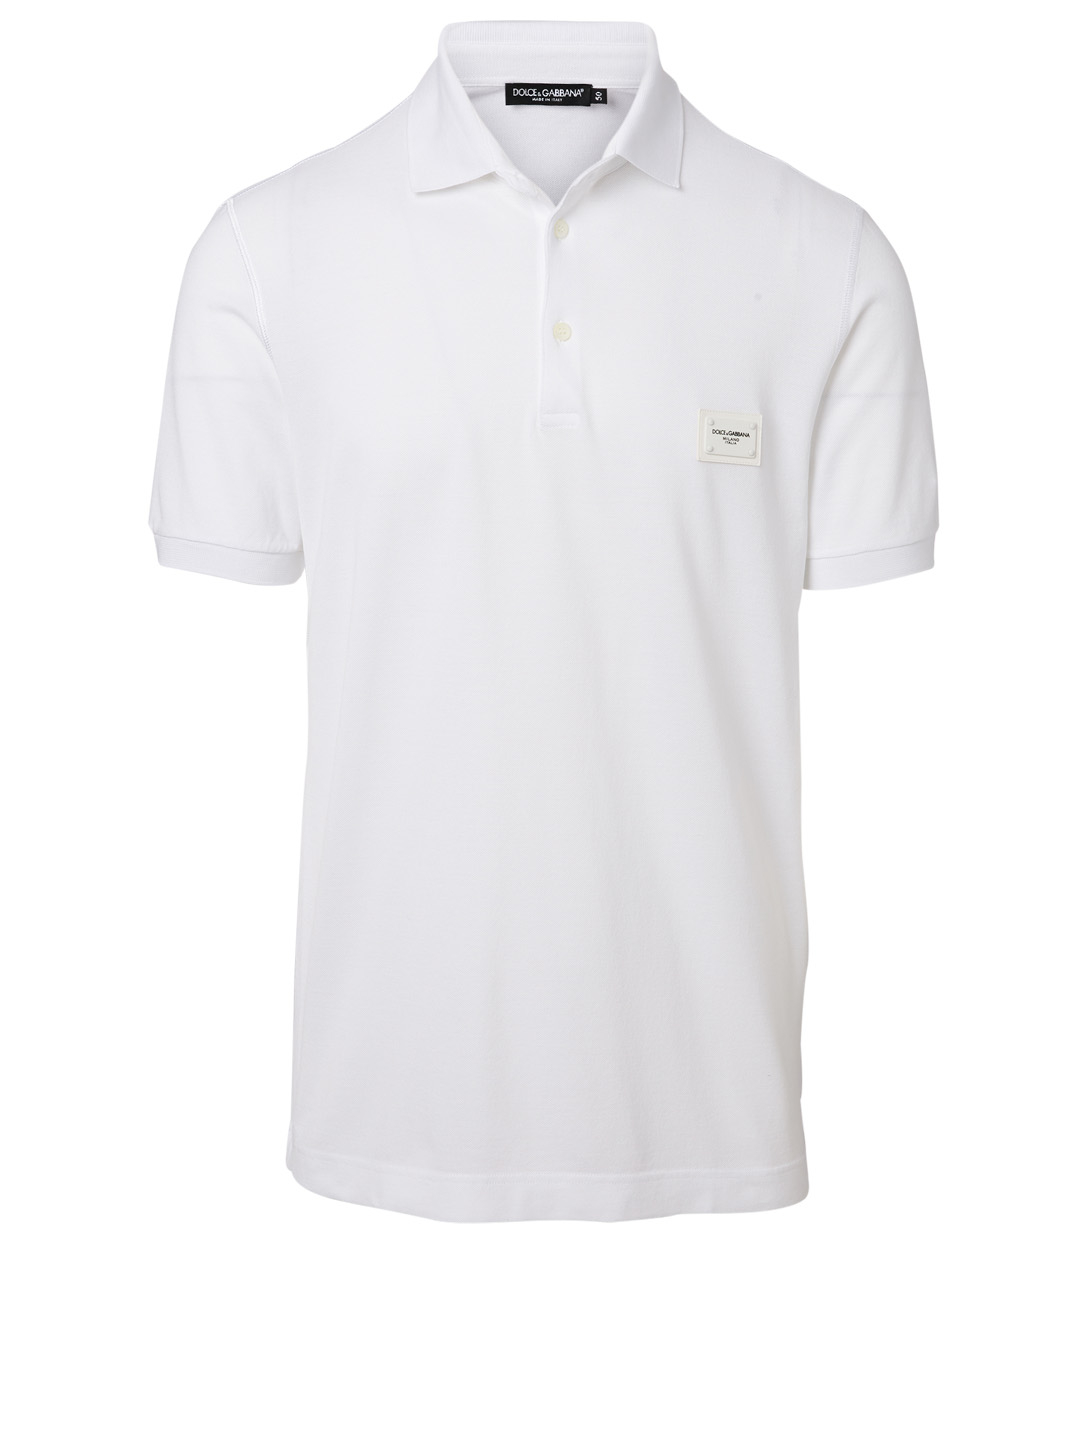 DOLCE & GABBANA Cotton Logo Patch Polo Men's White